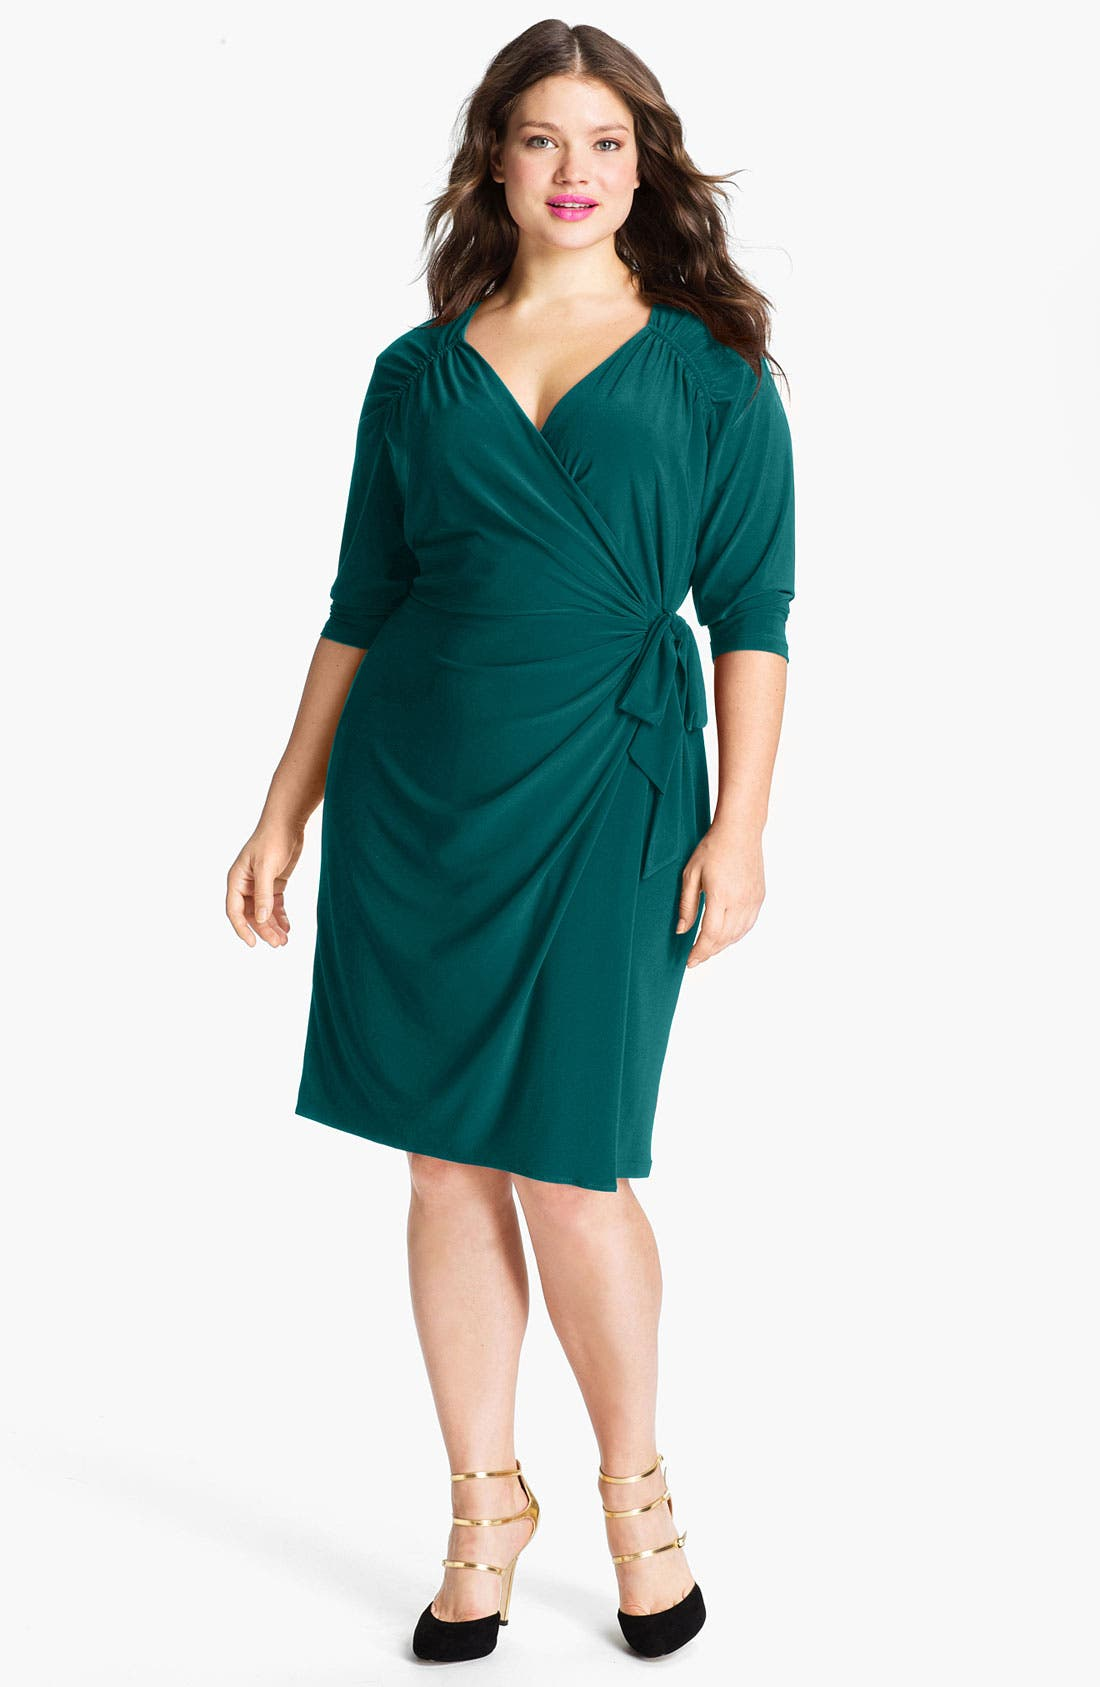 Main Image - Suzi Chin for Maggy Boutique Jersey Faux Wrap Dress (Plus)